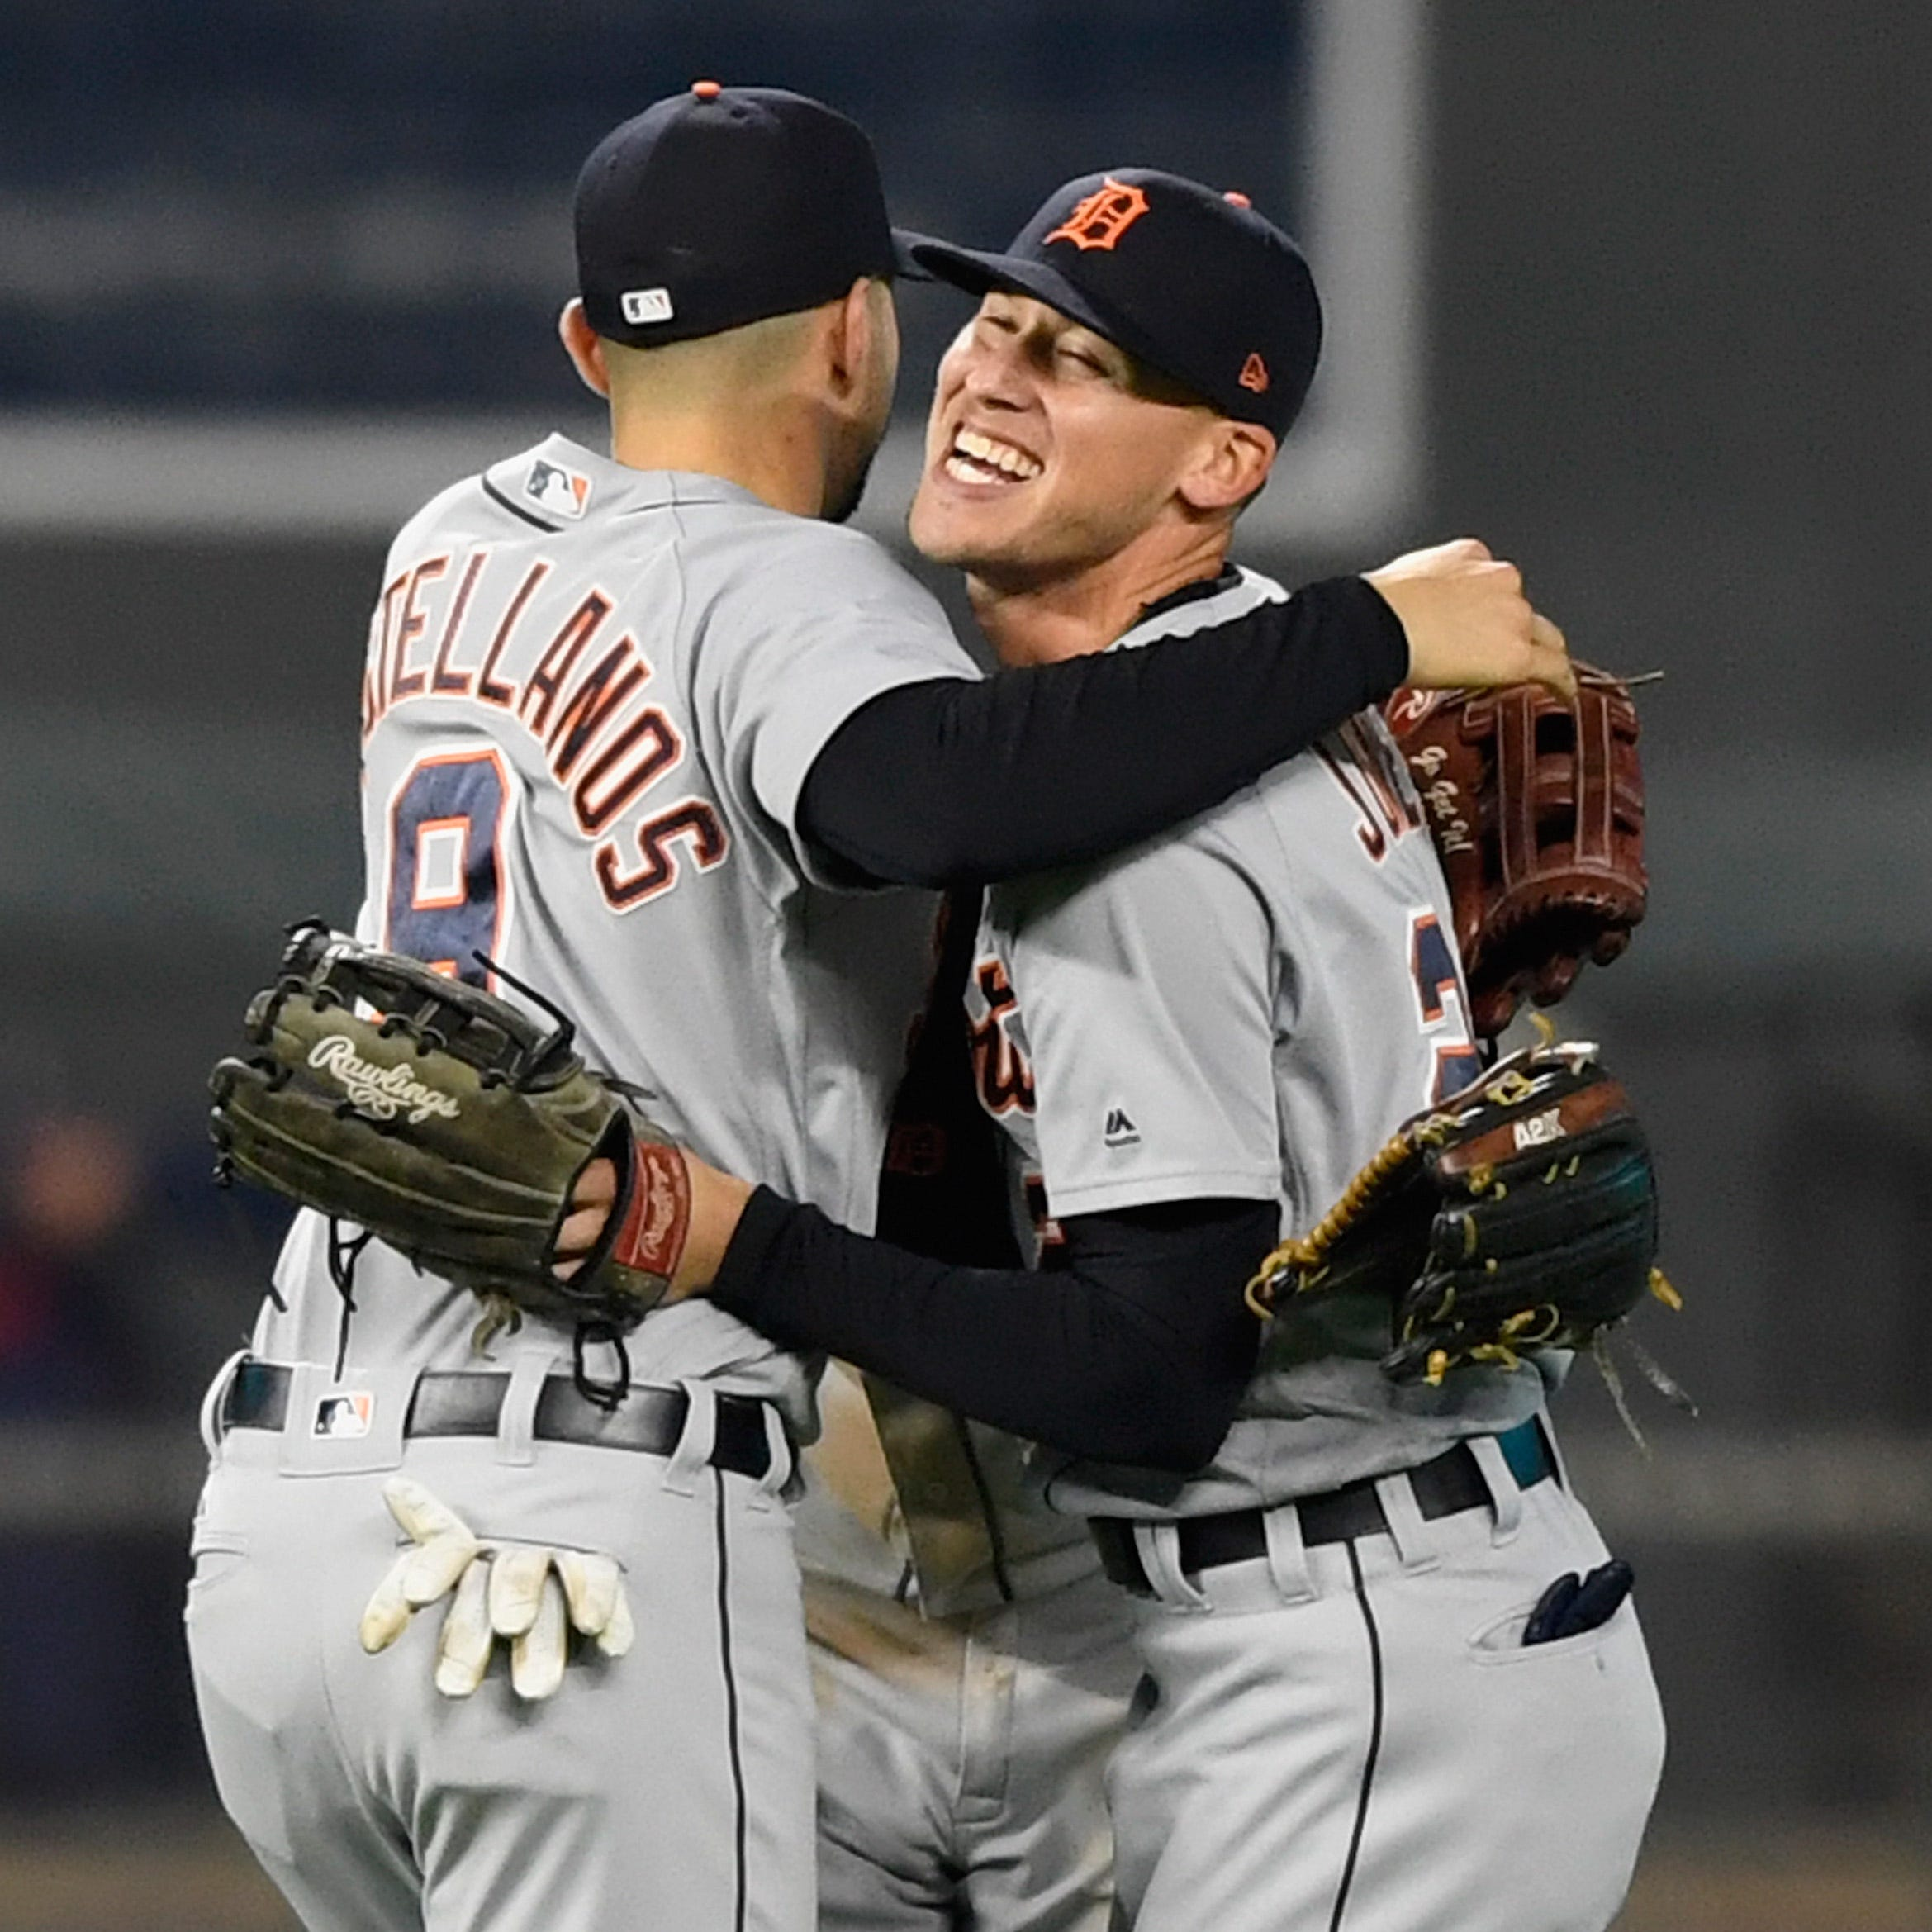 Tigers erupt for four in 8th inning to back strong start by Turnbull